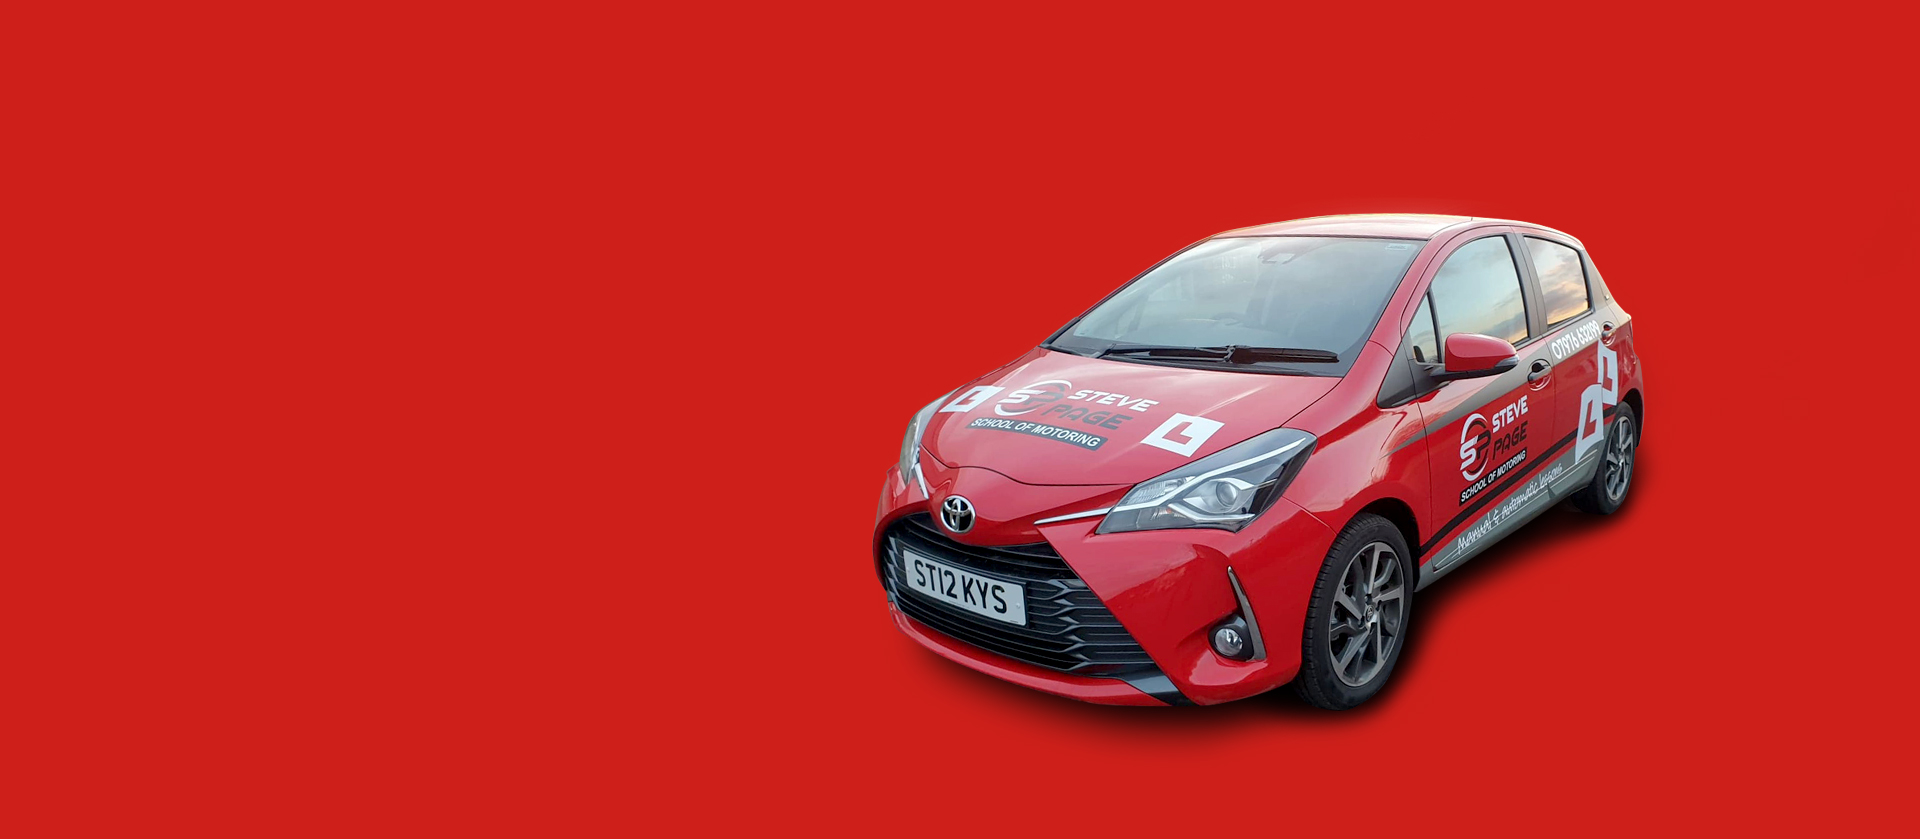 Your Perfect Choice For <br> Driving Lessons